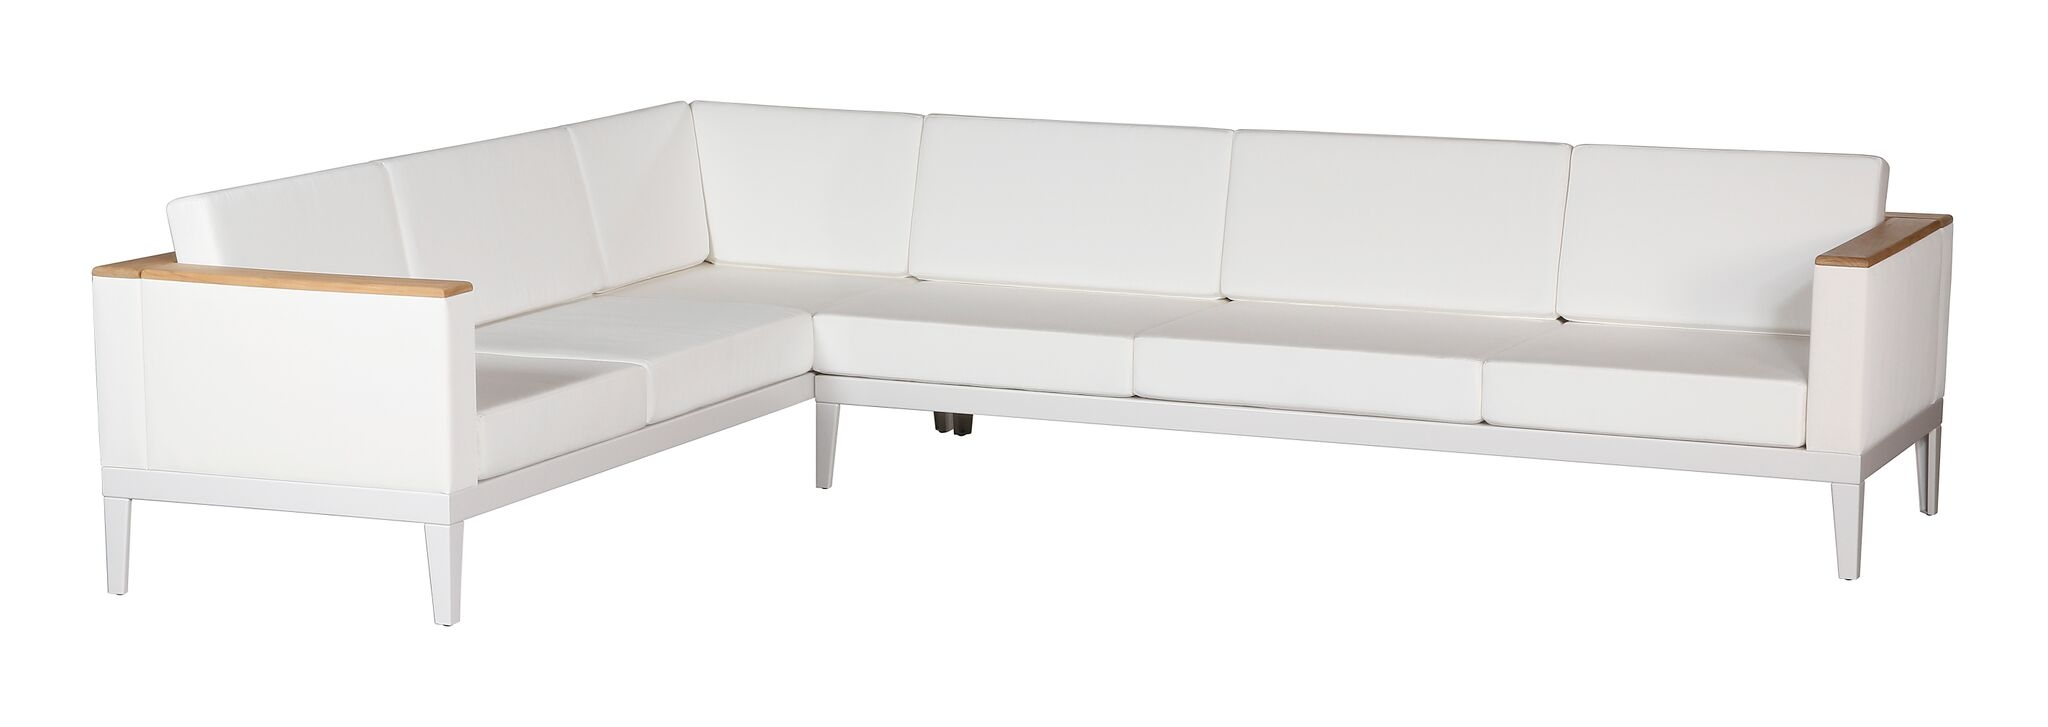 Deep Seating Six Seater Corner Sectional Set Product Photo